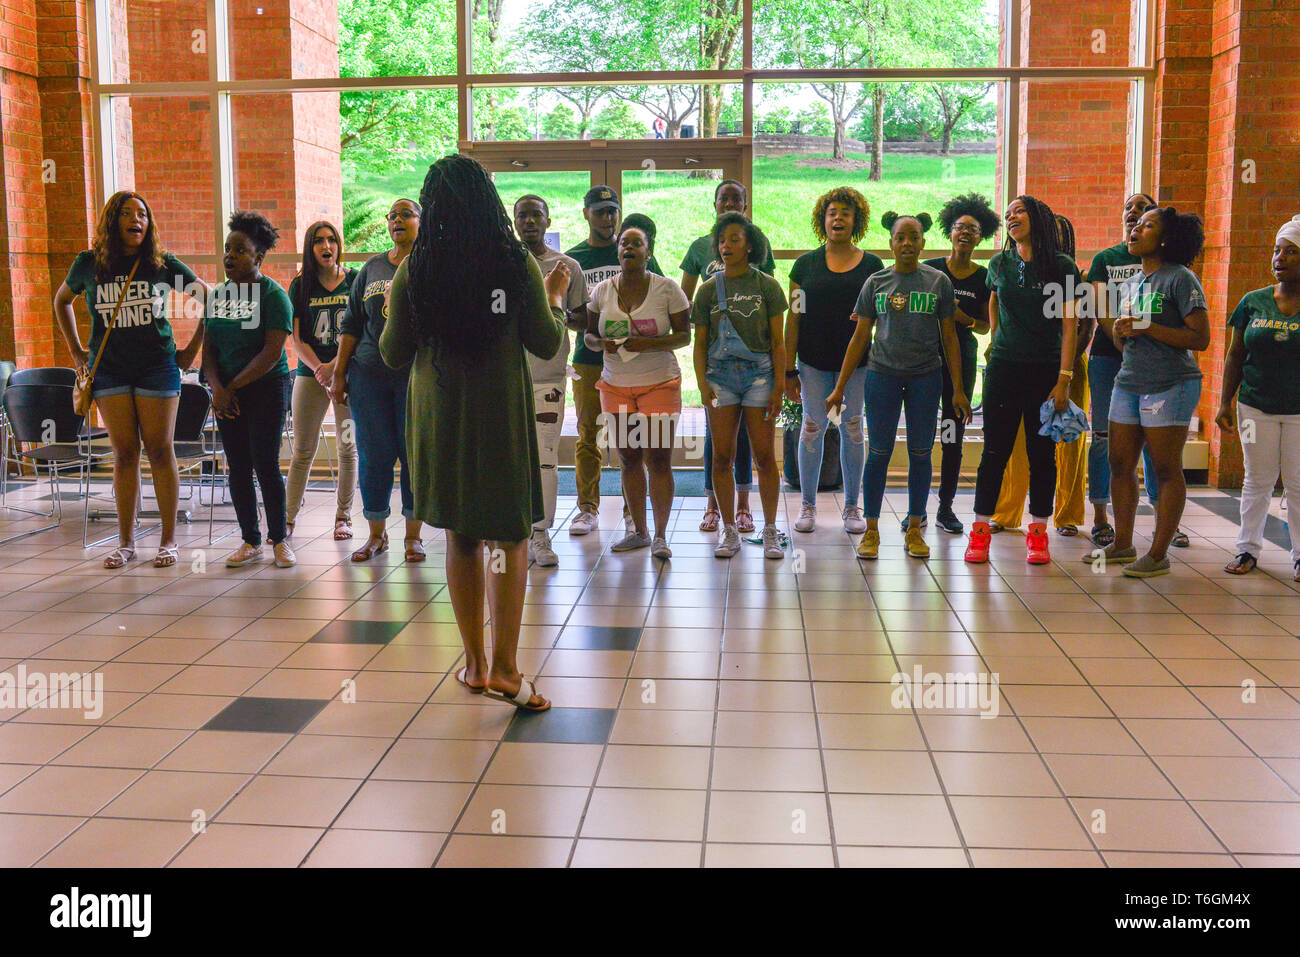 Charlotte, North Carolina, USA. 01st May, 2019. Students, teachers, and community members gather to hold vigil at UNCC including this singing group who provided support before the vigil. A mass shooting occurred at the university the prior day adding one more school to the list of school shootings in America in the midst of a gun control controversy. Credit: Castle Light Images/Alamy Live News - Stock Image